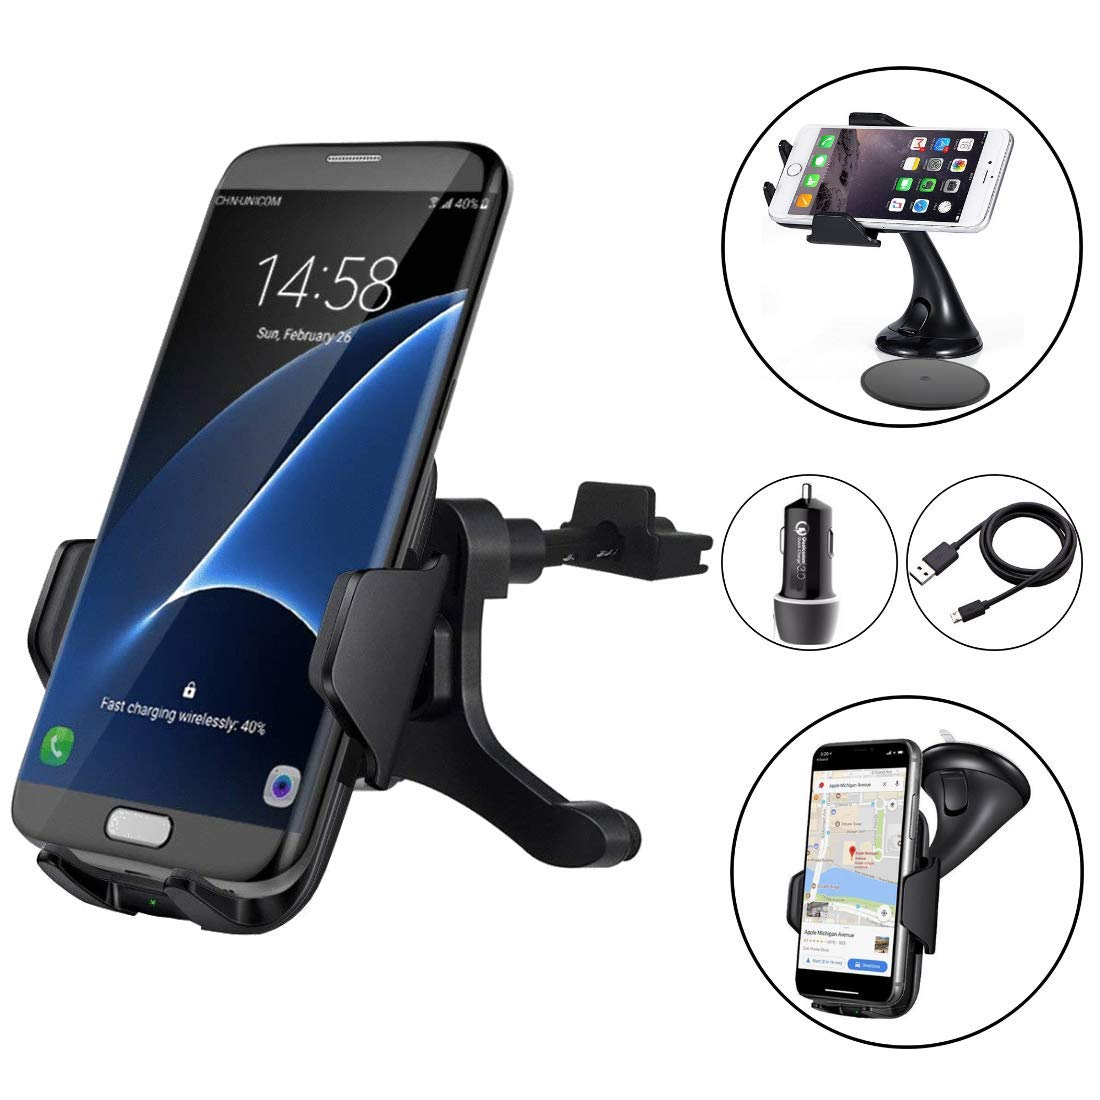 Wireless Car Charger Bundle - ZALE Wireless Charger Car Mount, Air Vent Phone Holder, QC3.0 Fast Charging Adapter Included, for iPhone X/8/8 Plus|Samsung Galaxy S9/8/7/Note 8 & All QI-Enabled Devices